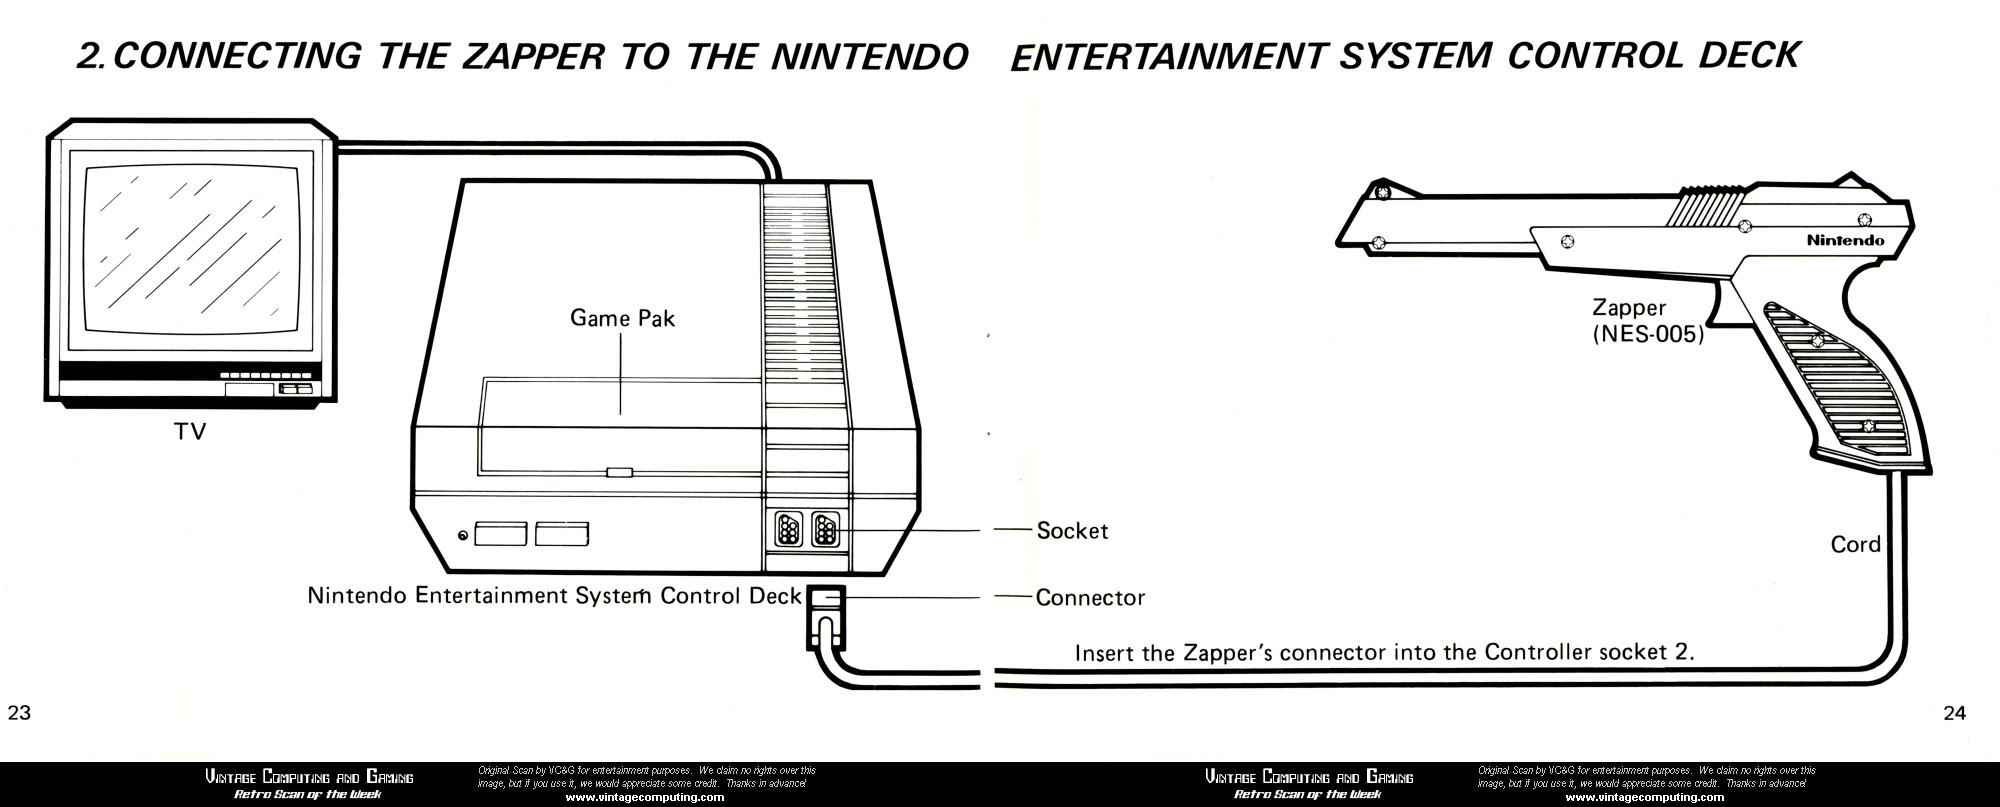 Vcg retro scan of the week the nes zapper diagram nintendo nes zapper diagram from super mario bros duck hunt instruction manual circa 1988 ccuart Images